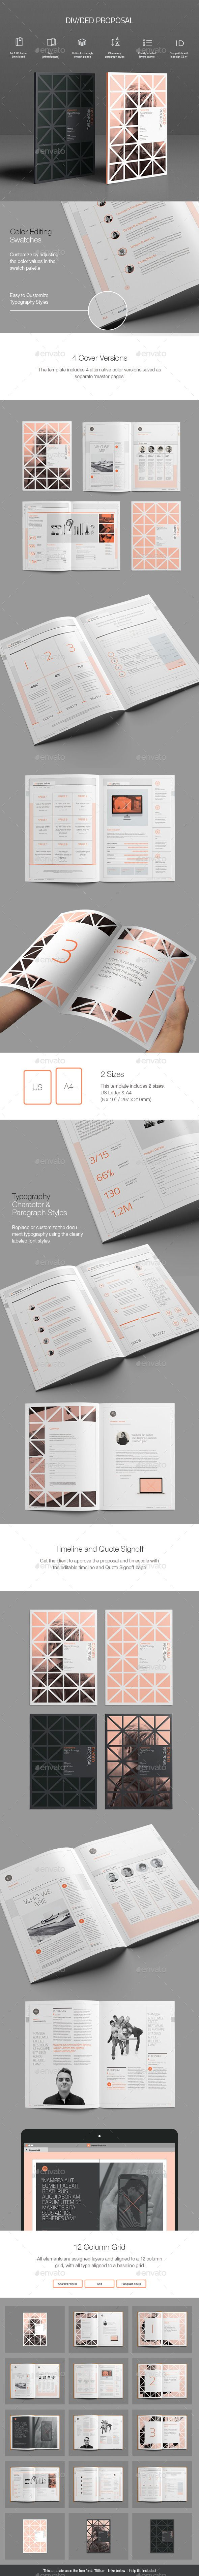 Divided proposal template proposal templates proposals and brochures divided proposal template accmission Gallery